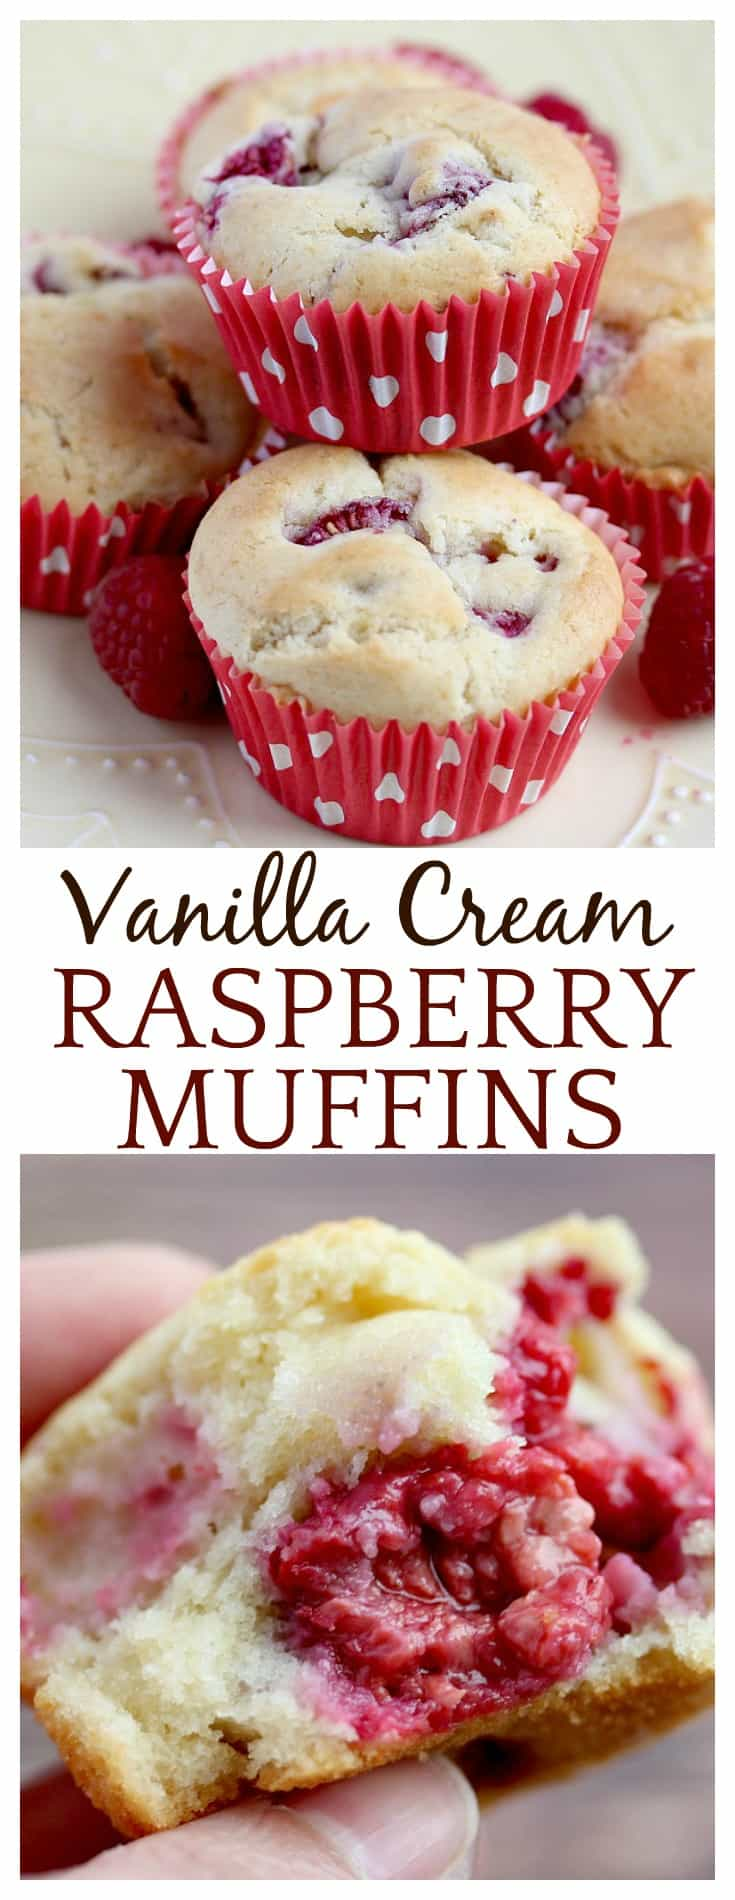 Blueberry muffins have long been my favorite, but this easy recipe for Vanilla Cream Raspberry Muffins are right up there! I use vanilla flavor coffee creamer in place of milk, and extra vanilla extract in the batter. This gives you get a burst of raspberry with a hint of vanilla in every bite!